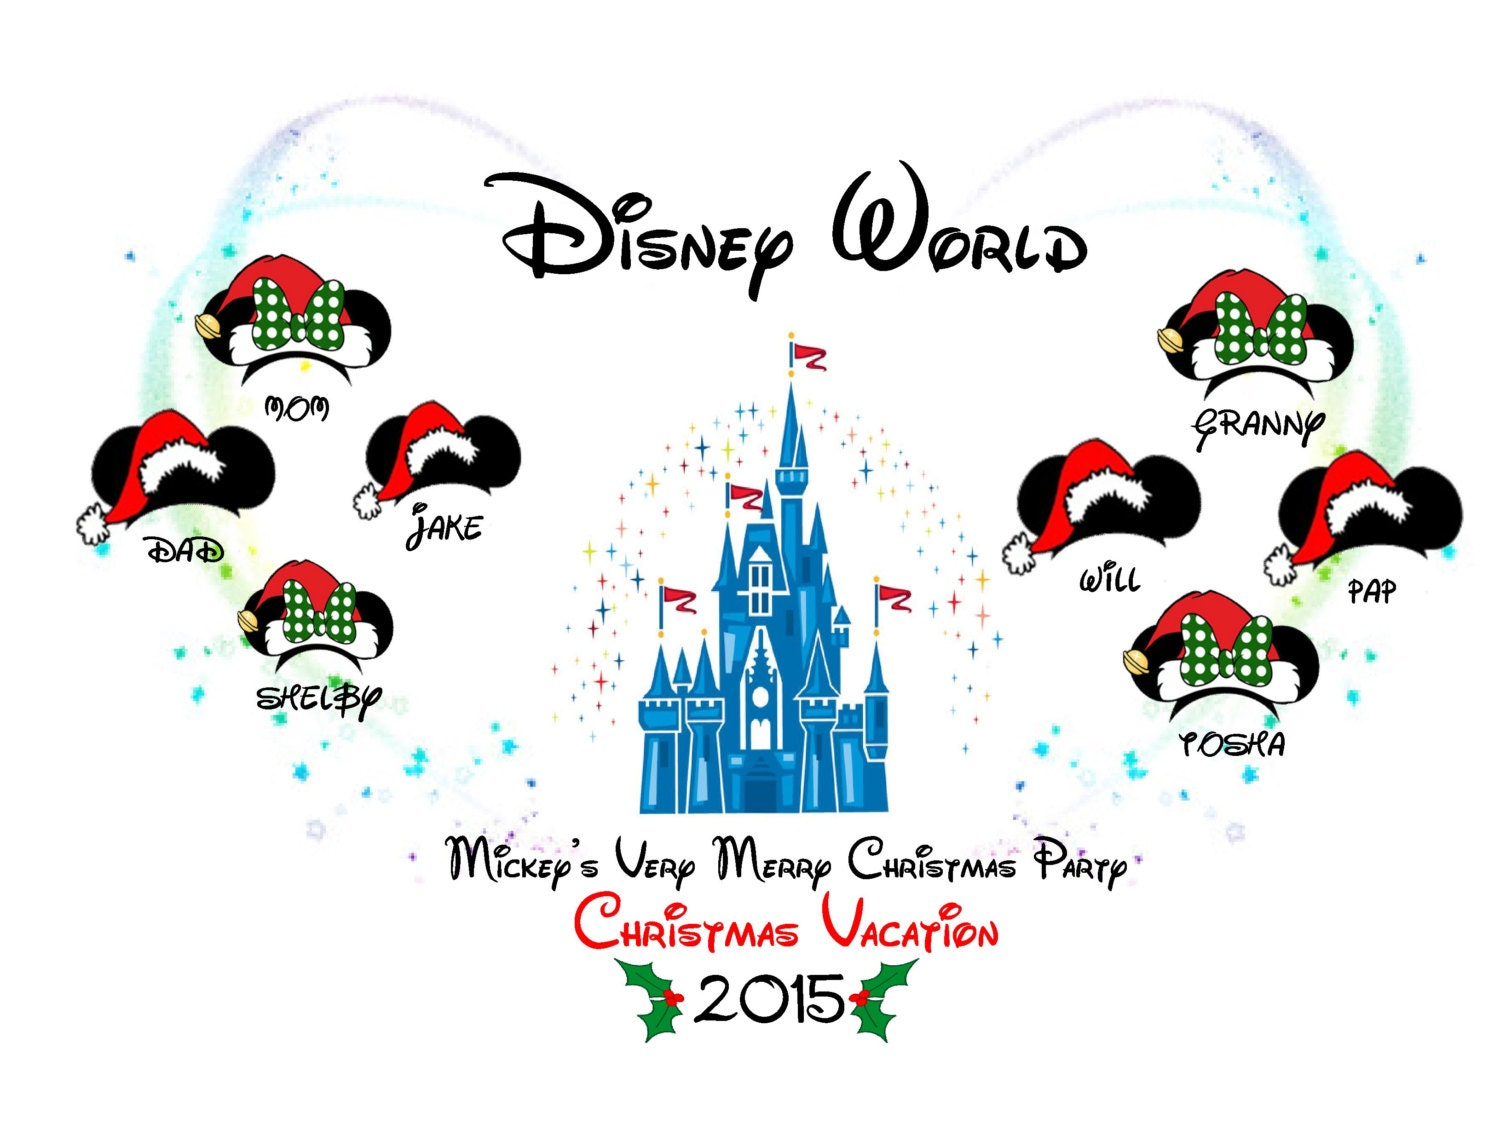 Mickey's Very Merry Christmas Party, Christmas Vacation 2017/2018 ...